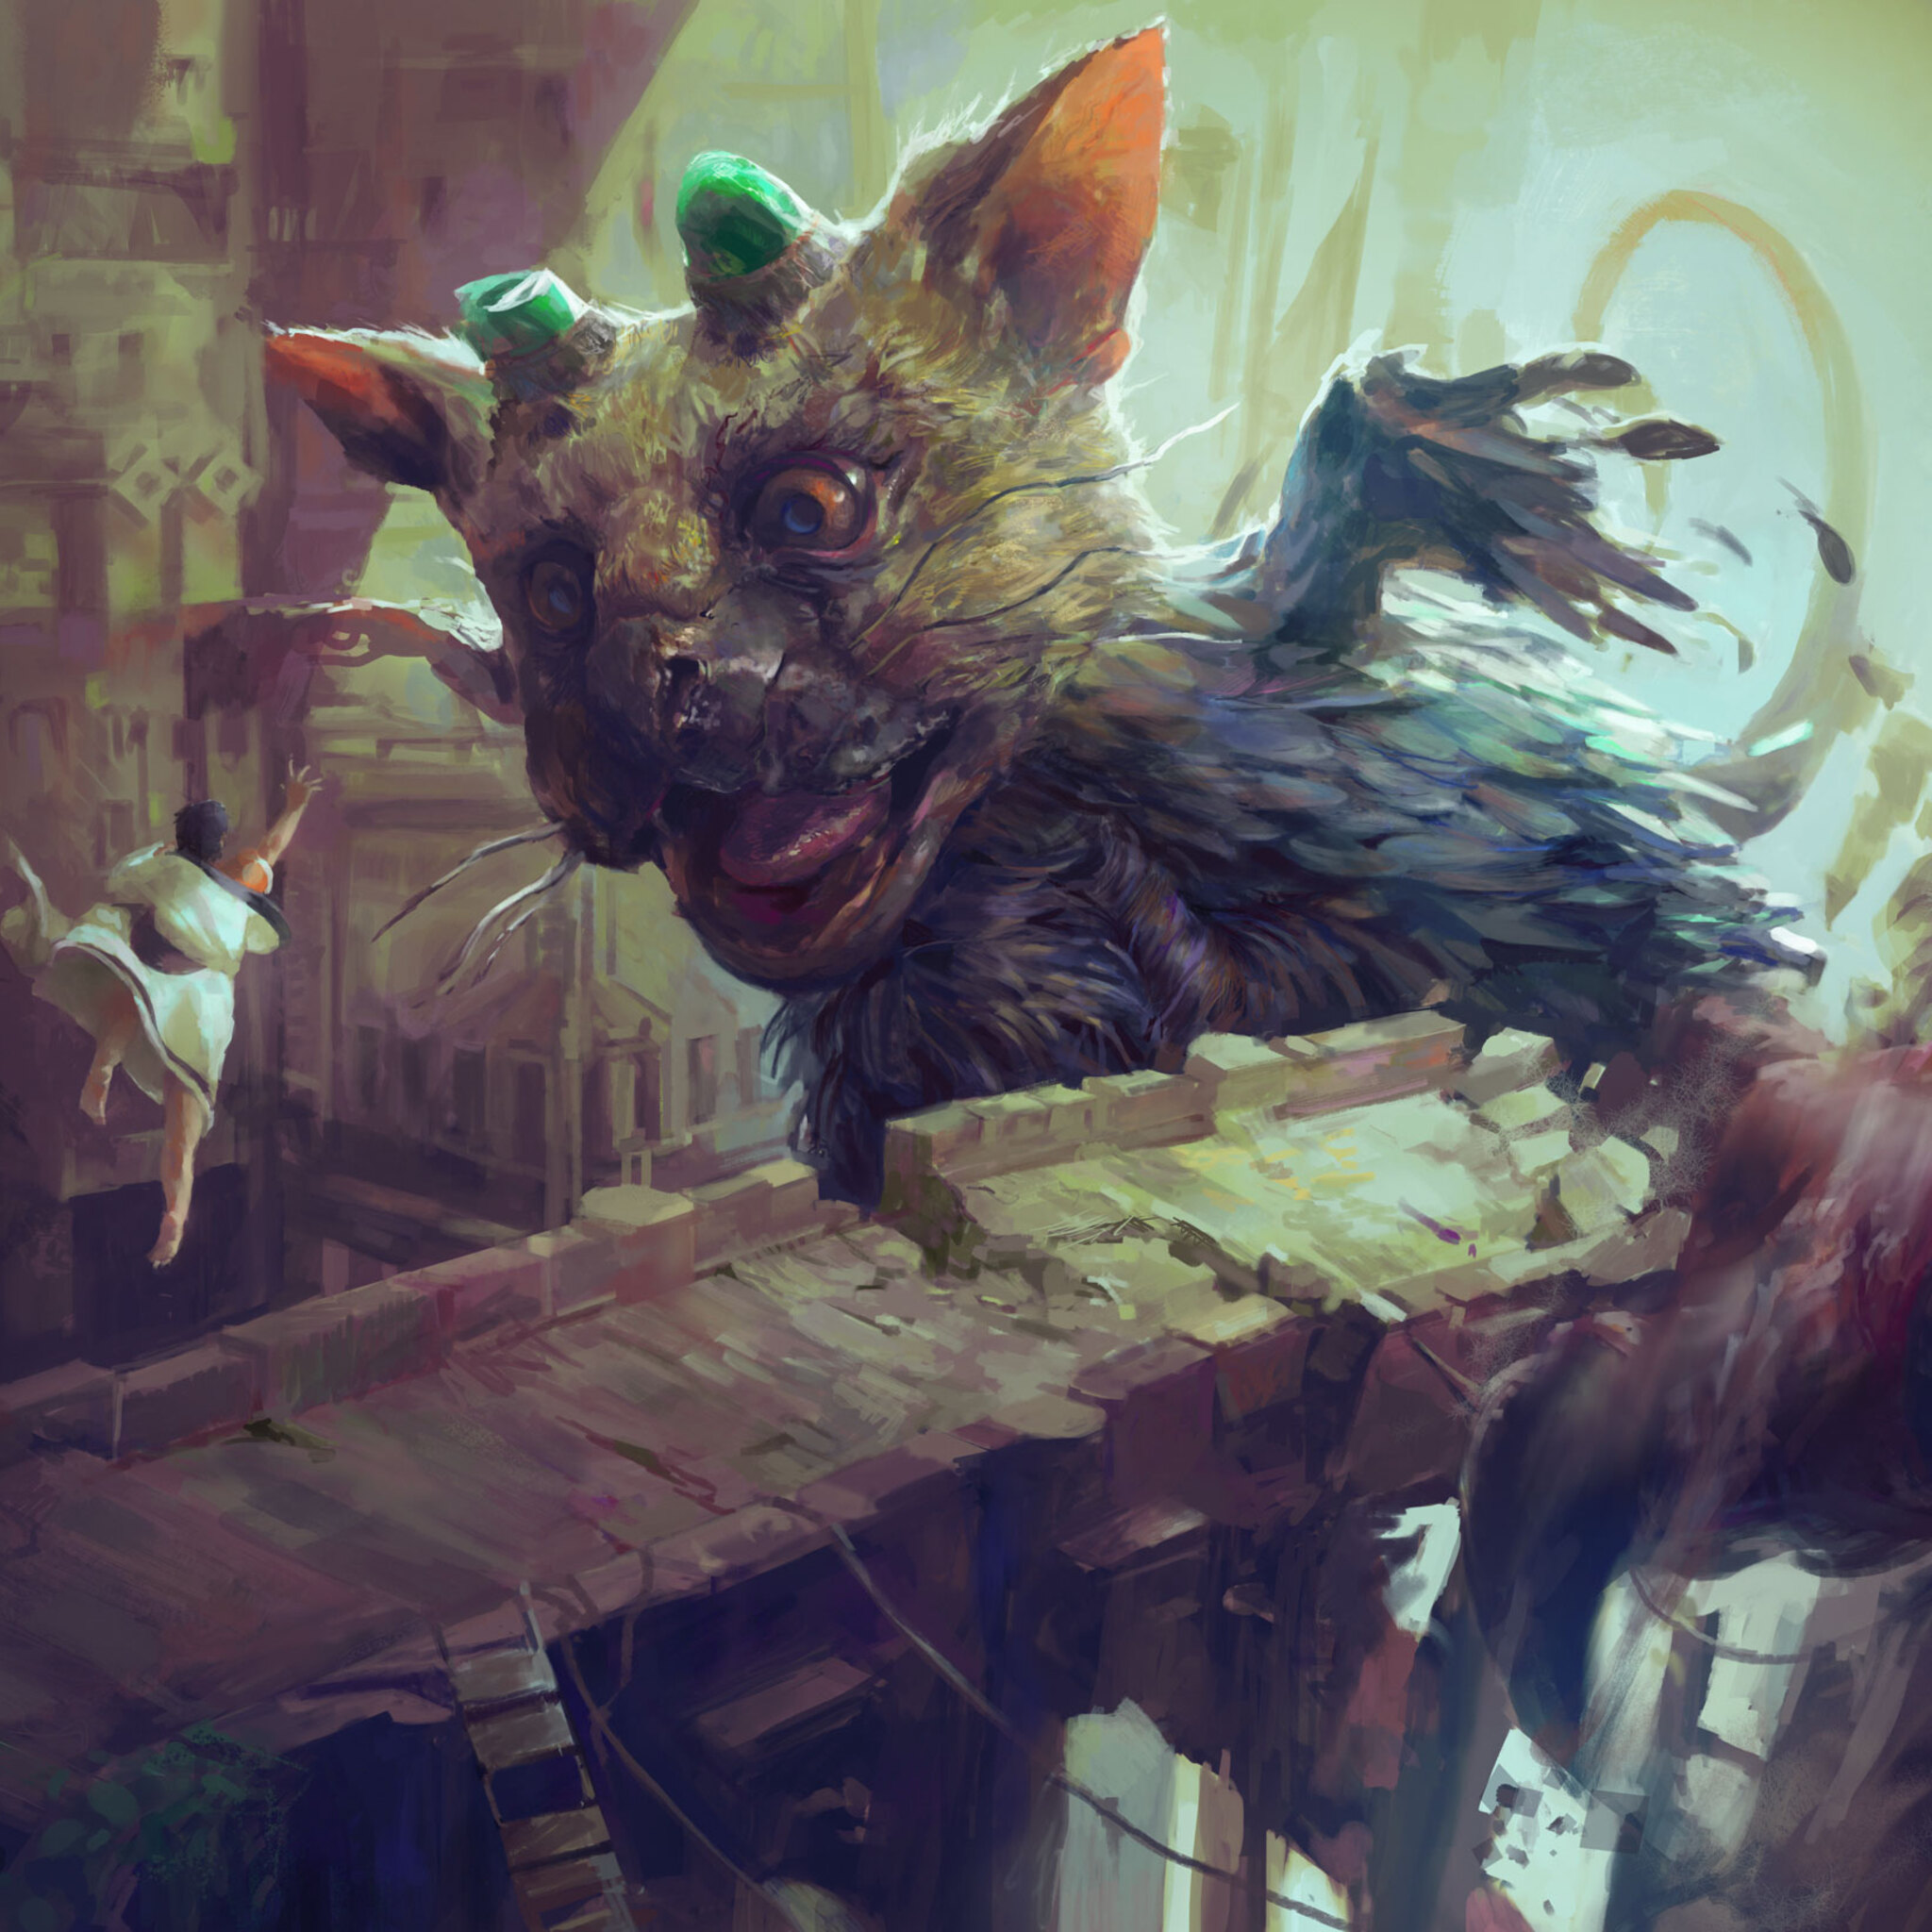 2048x2048 The Last Guardian Video Game Artwork Ipad Air Hd 4k